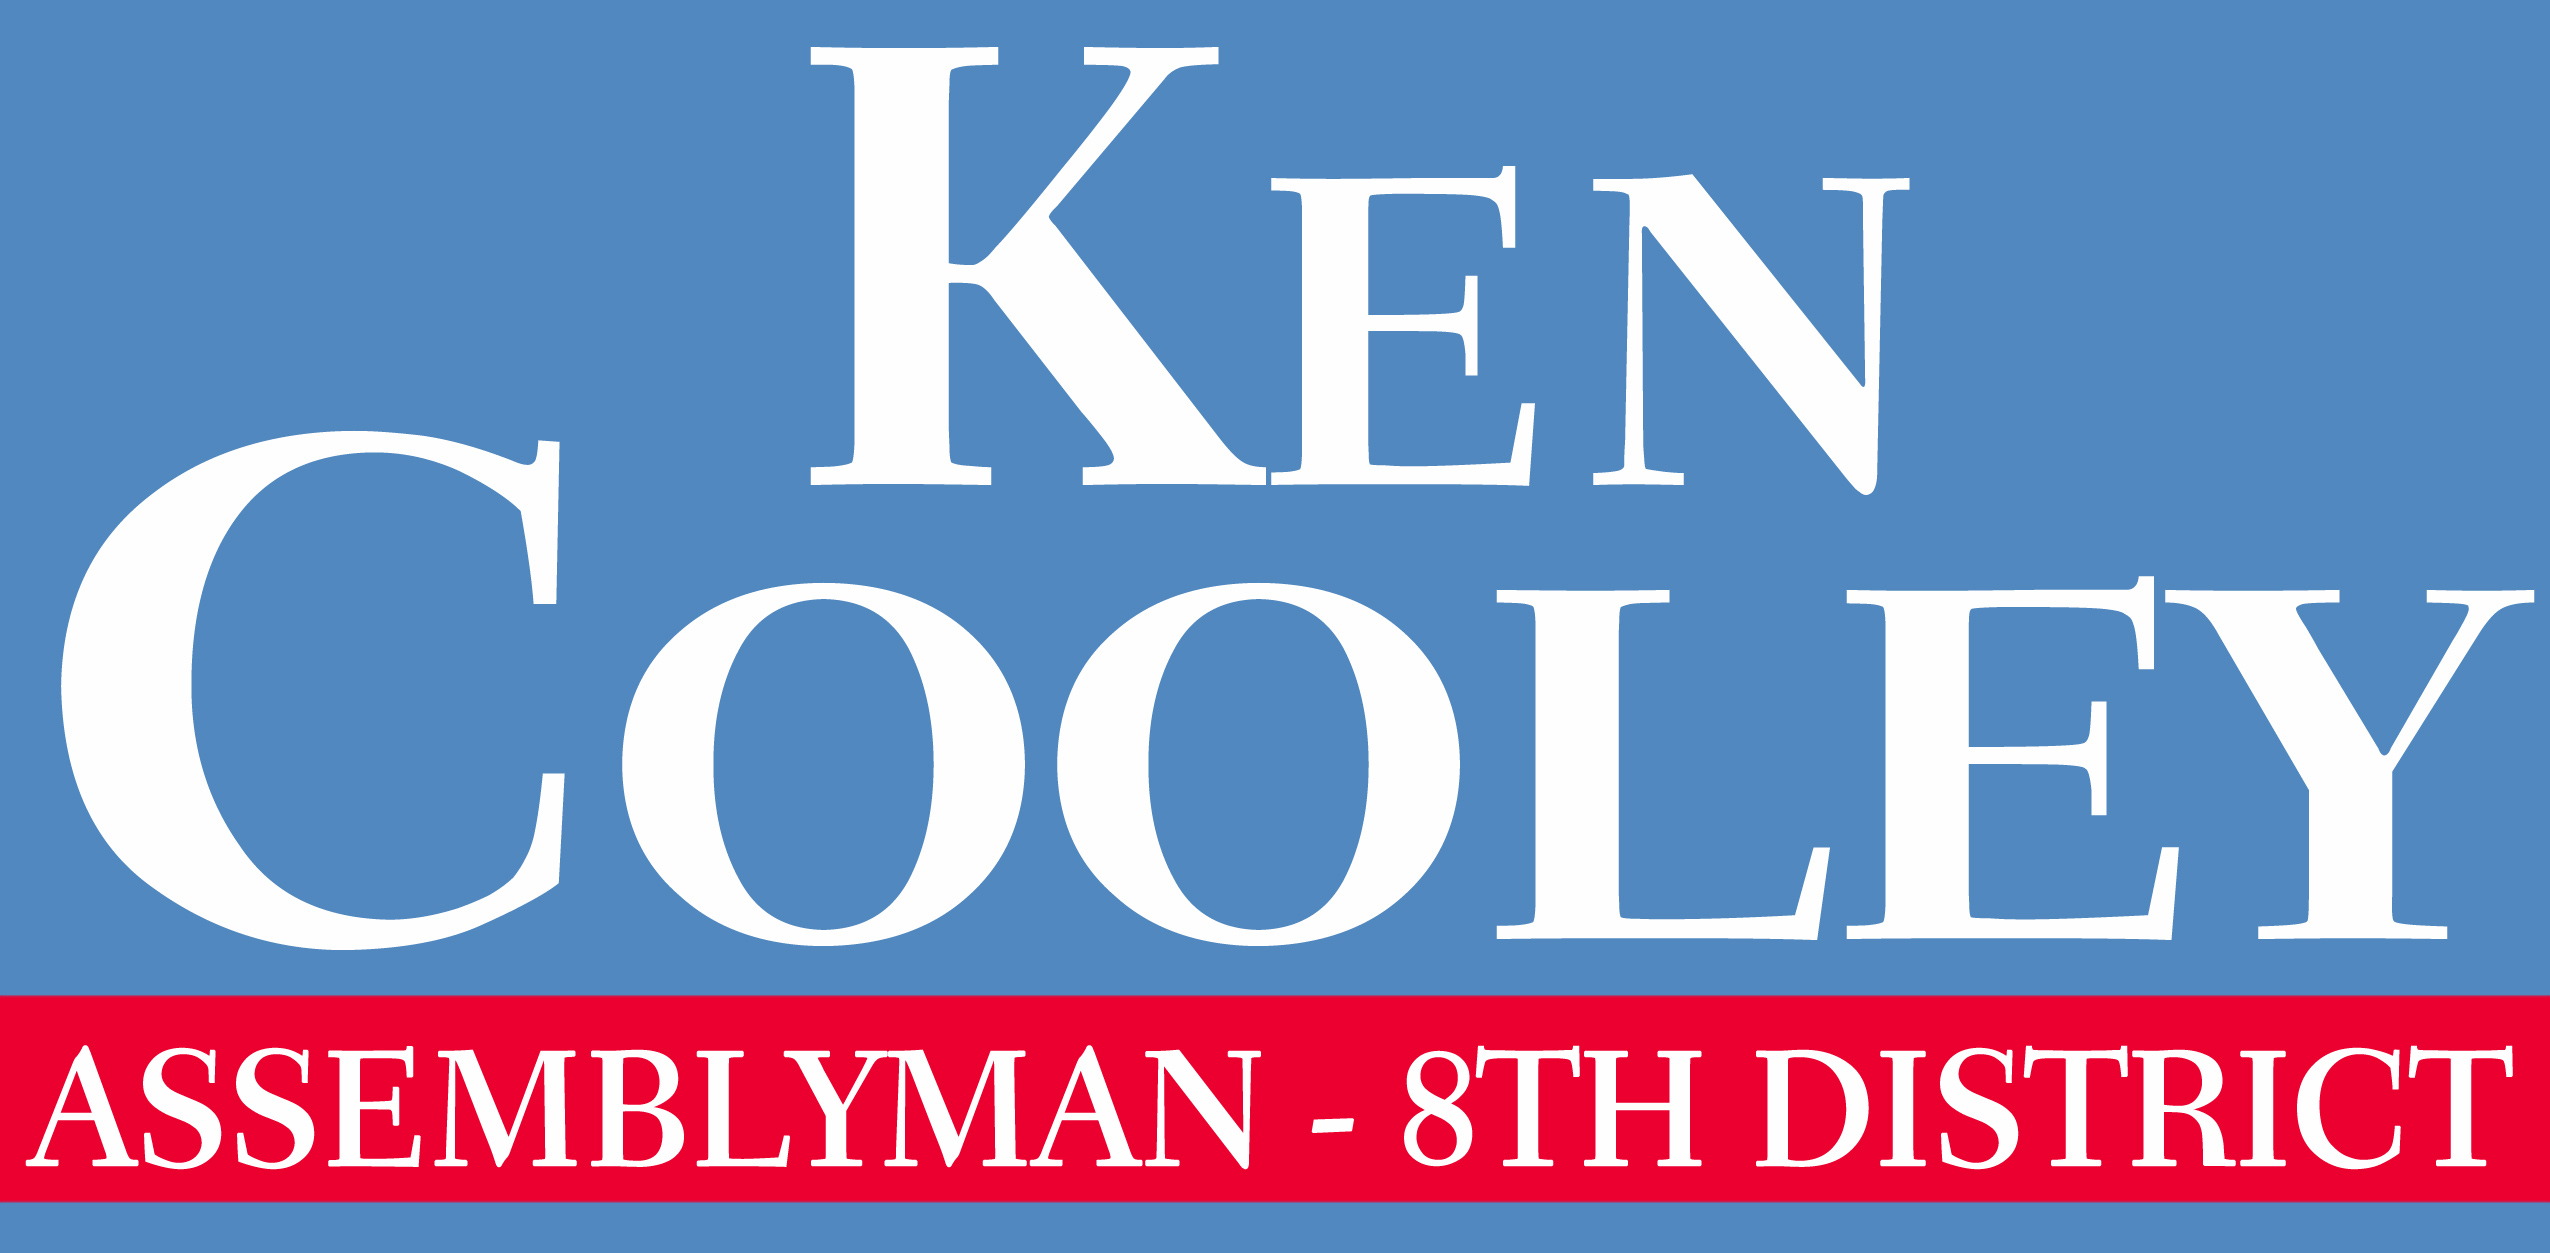 Assemblyman Ken Cooley District 8